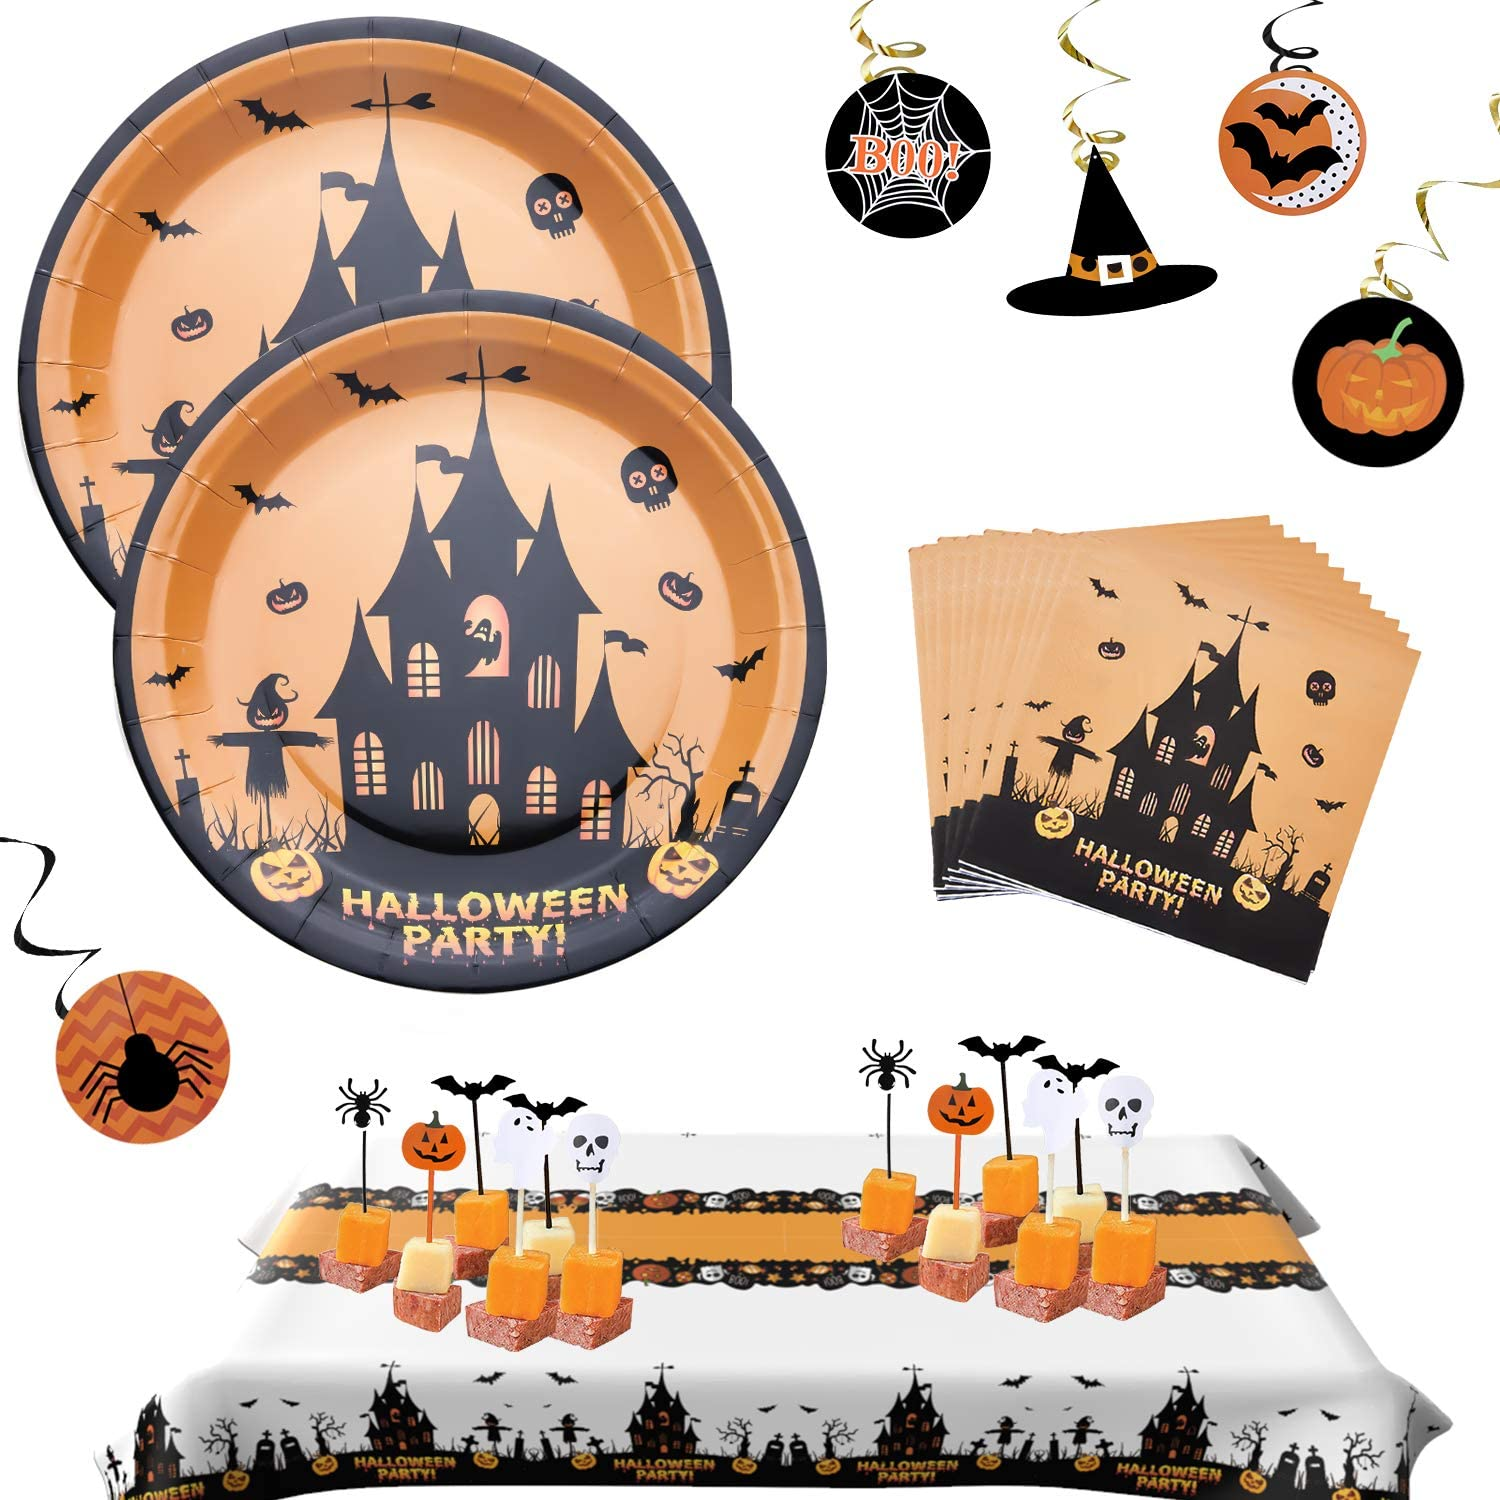 12 Hanging Swirls 24 Cake Topper Serves 24 2 Table Cover Halloween Party Plates Orange Paper Plates Halloween Plates Halloween Party Supplies Set Includes 24 Halloween Plates and Napkins